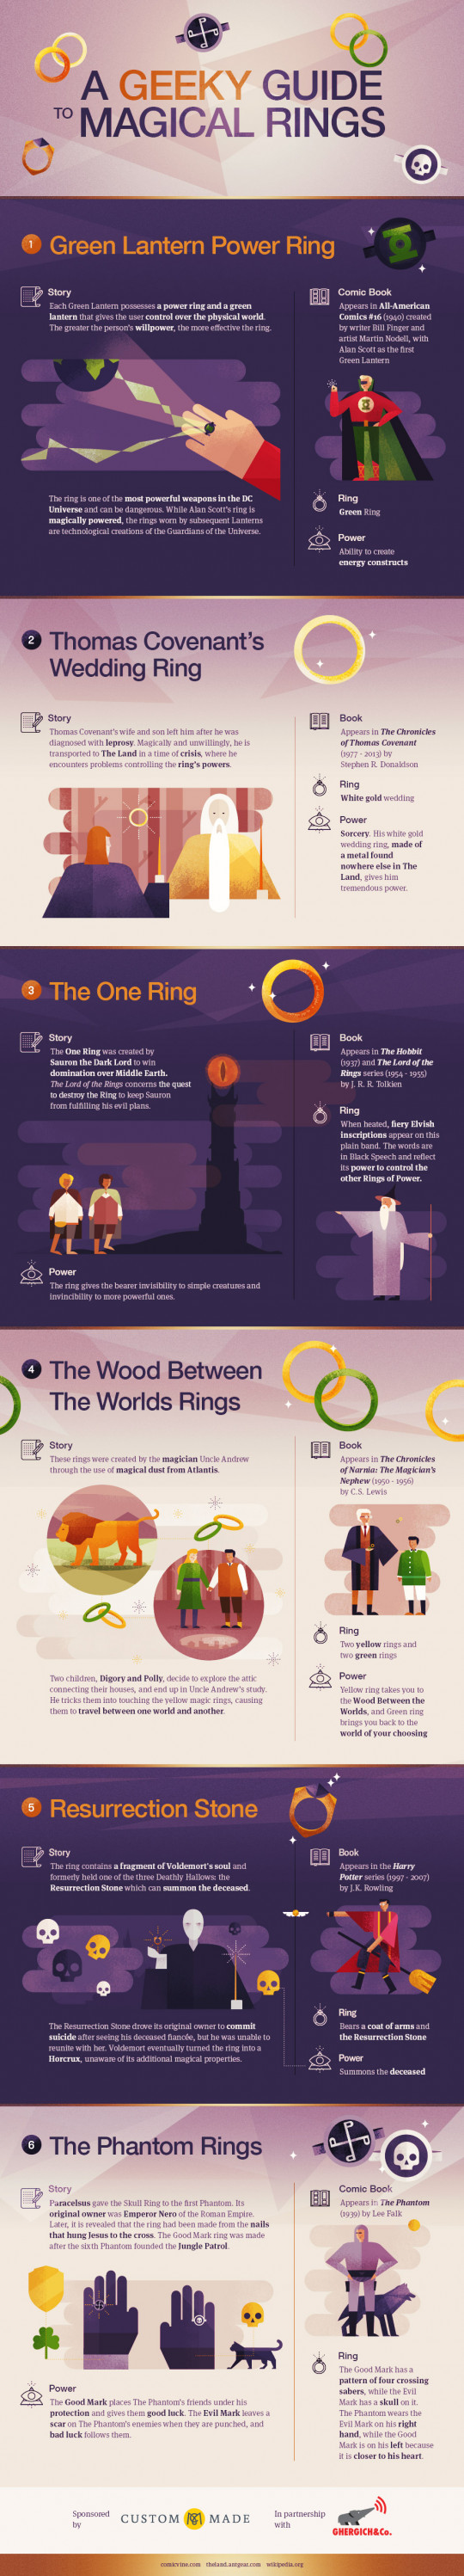 A Geeky Guide to Magical Rings